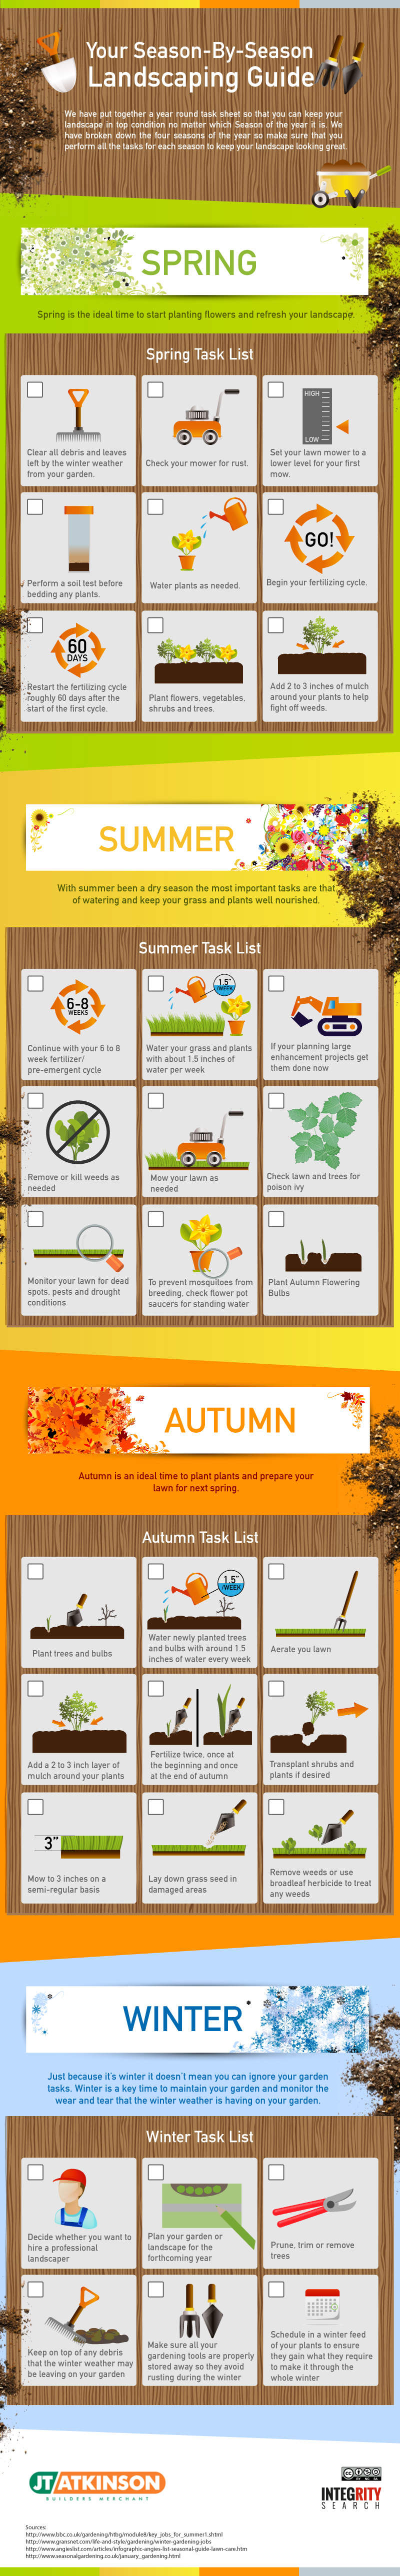 Your Season By Season Landscaping Guide